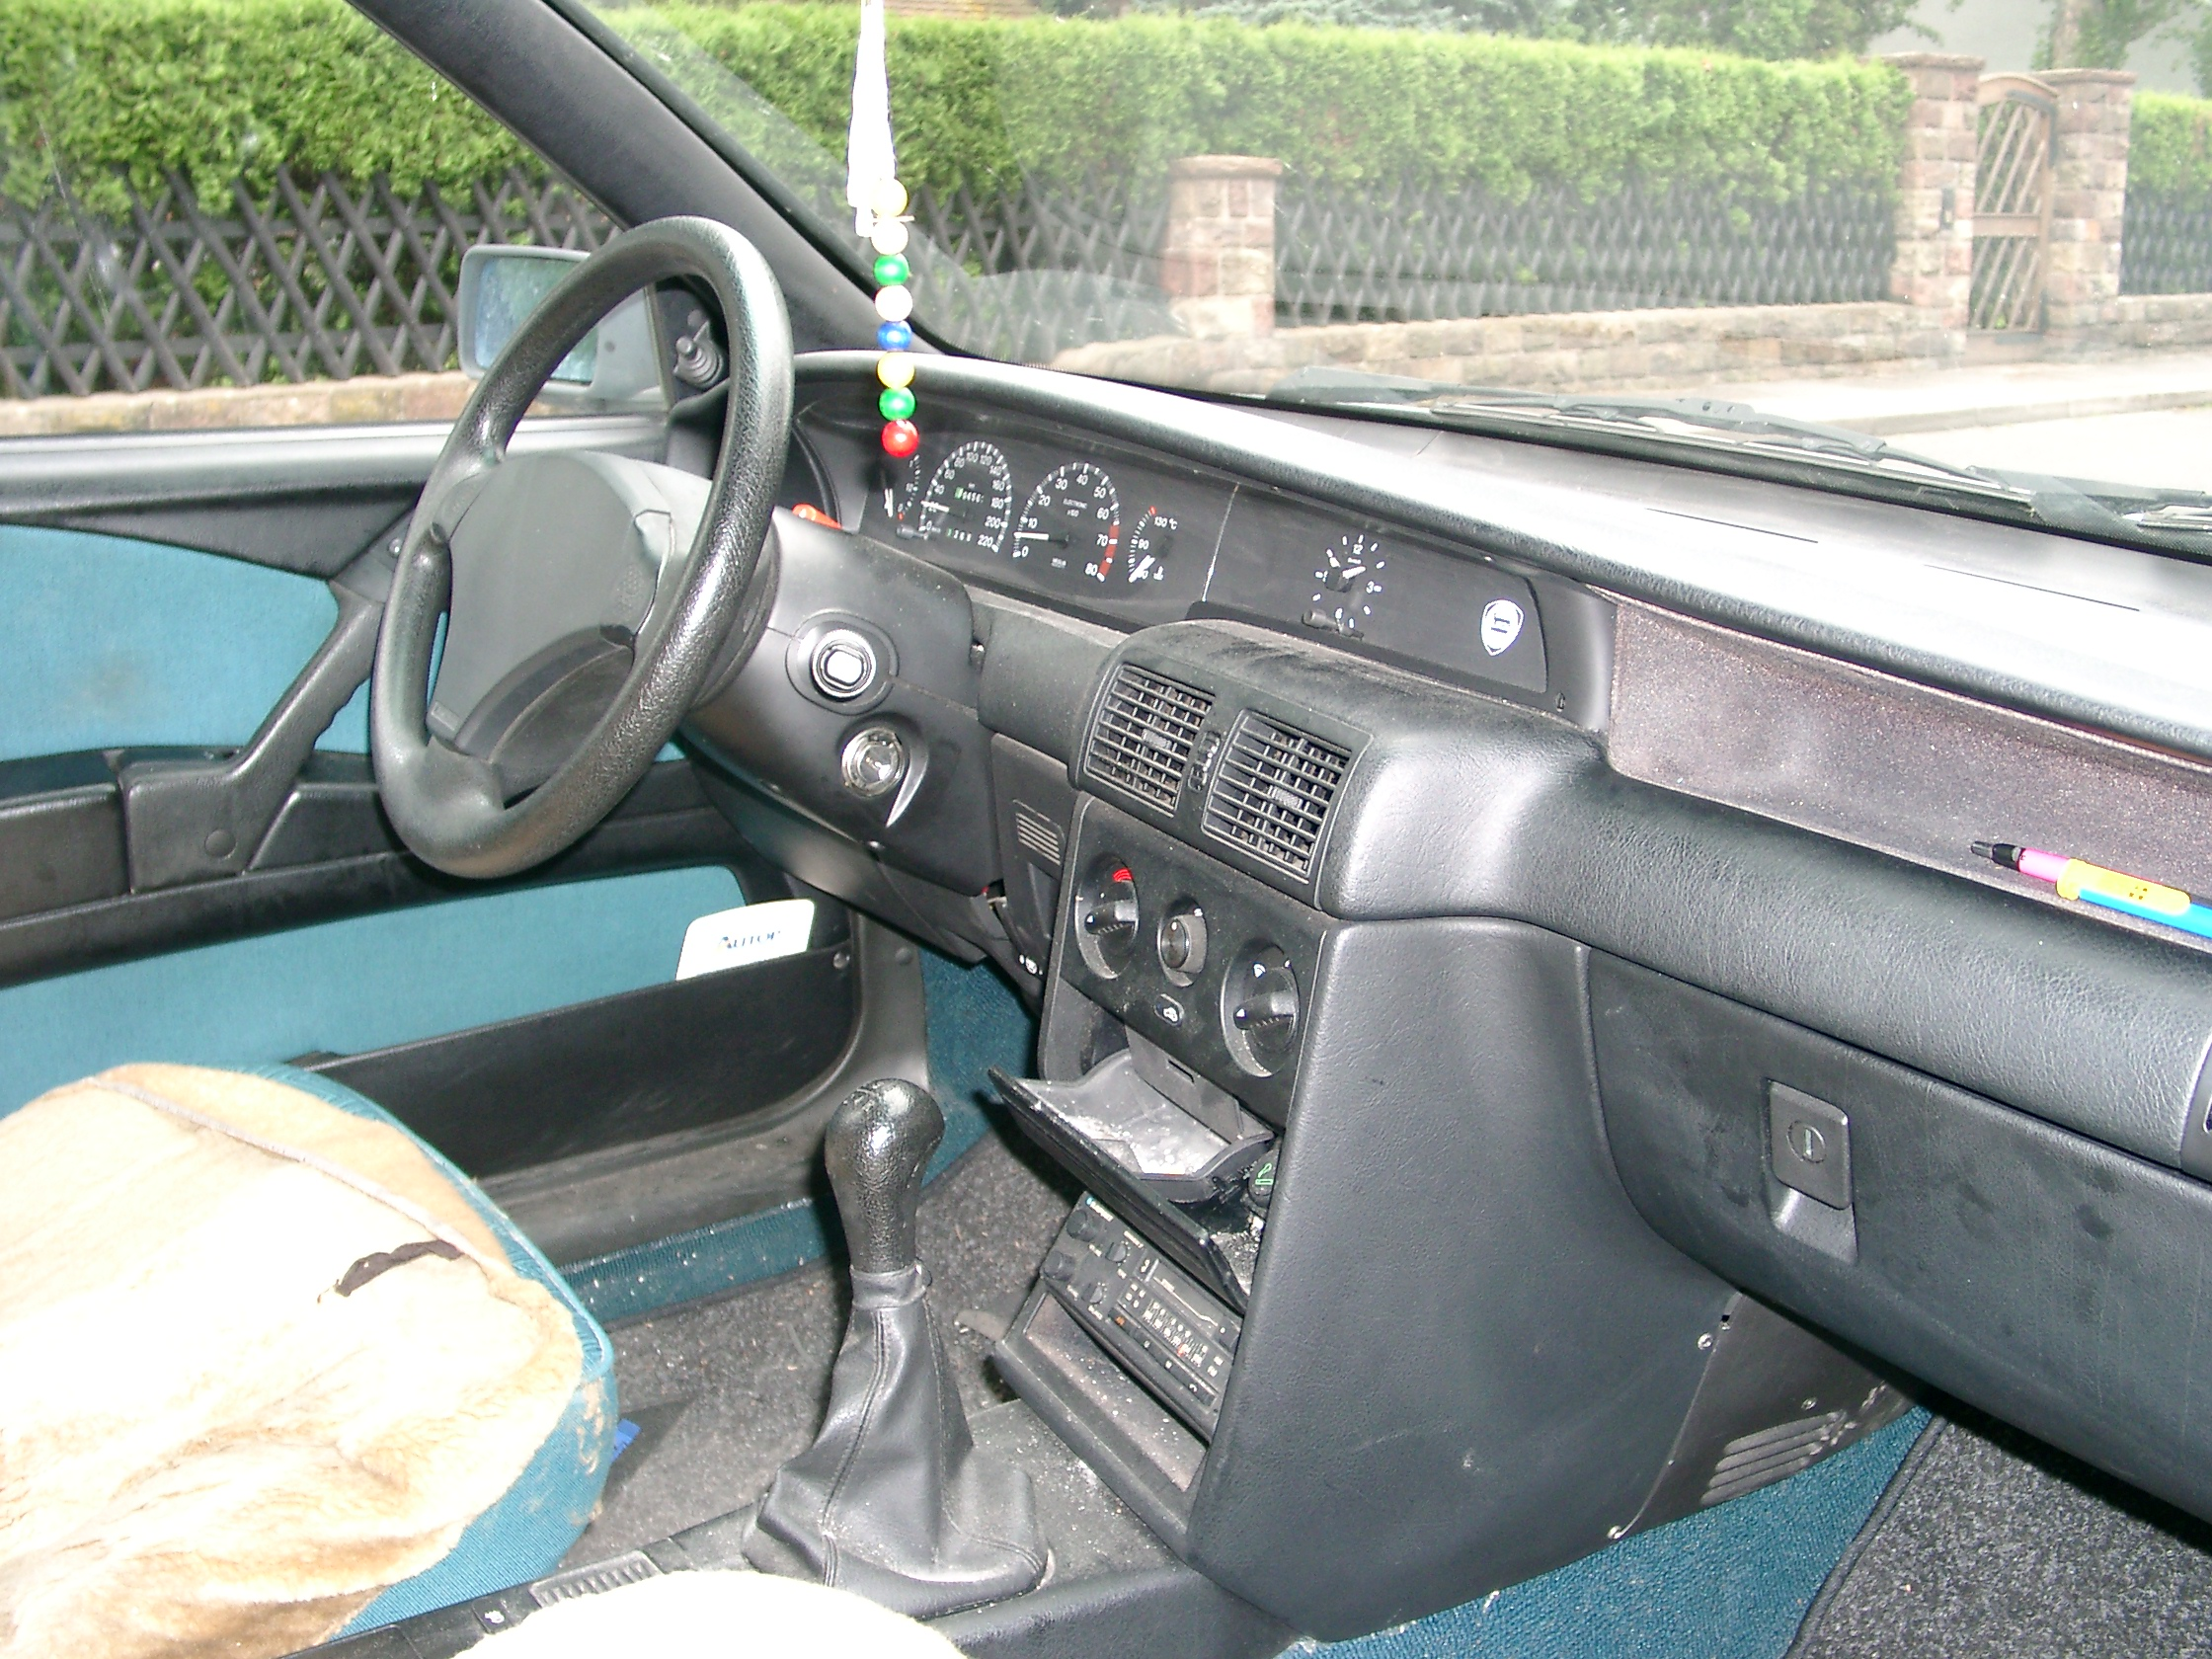 https://upload.wikimedia.org/wikipedia/commons/7/75/Lancia_Delta_inside_20070718.JPG